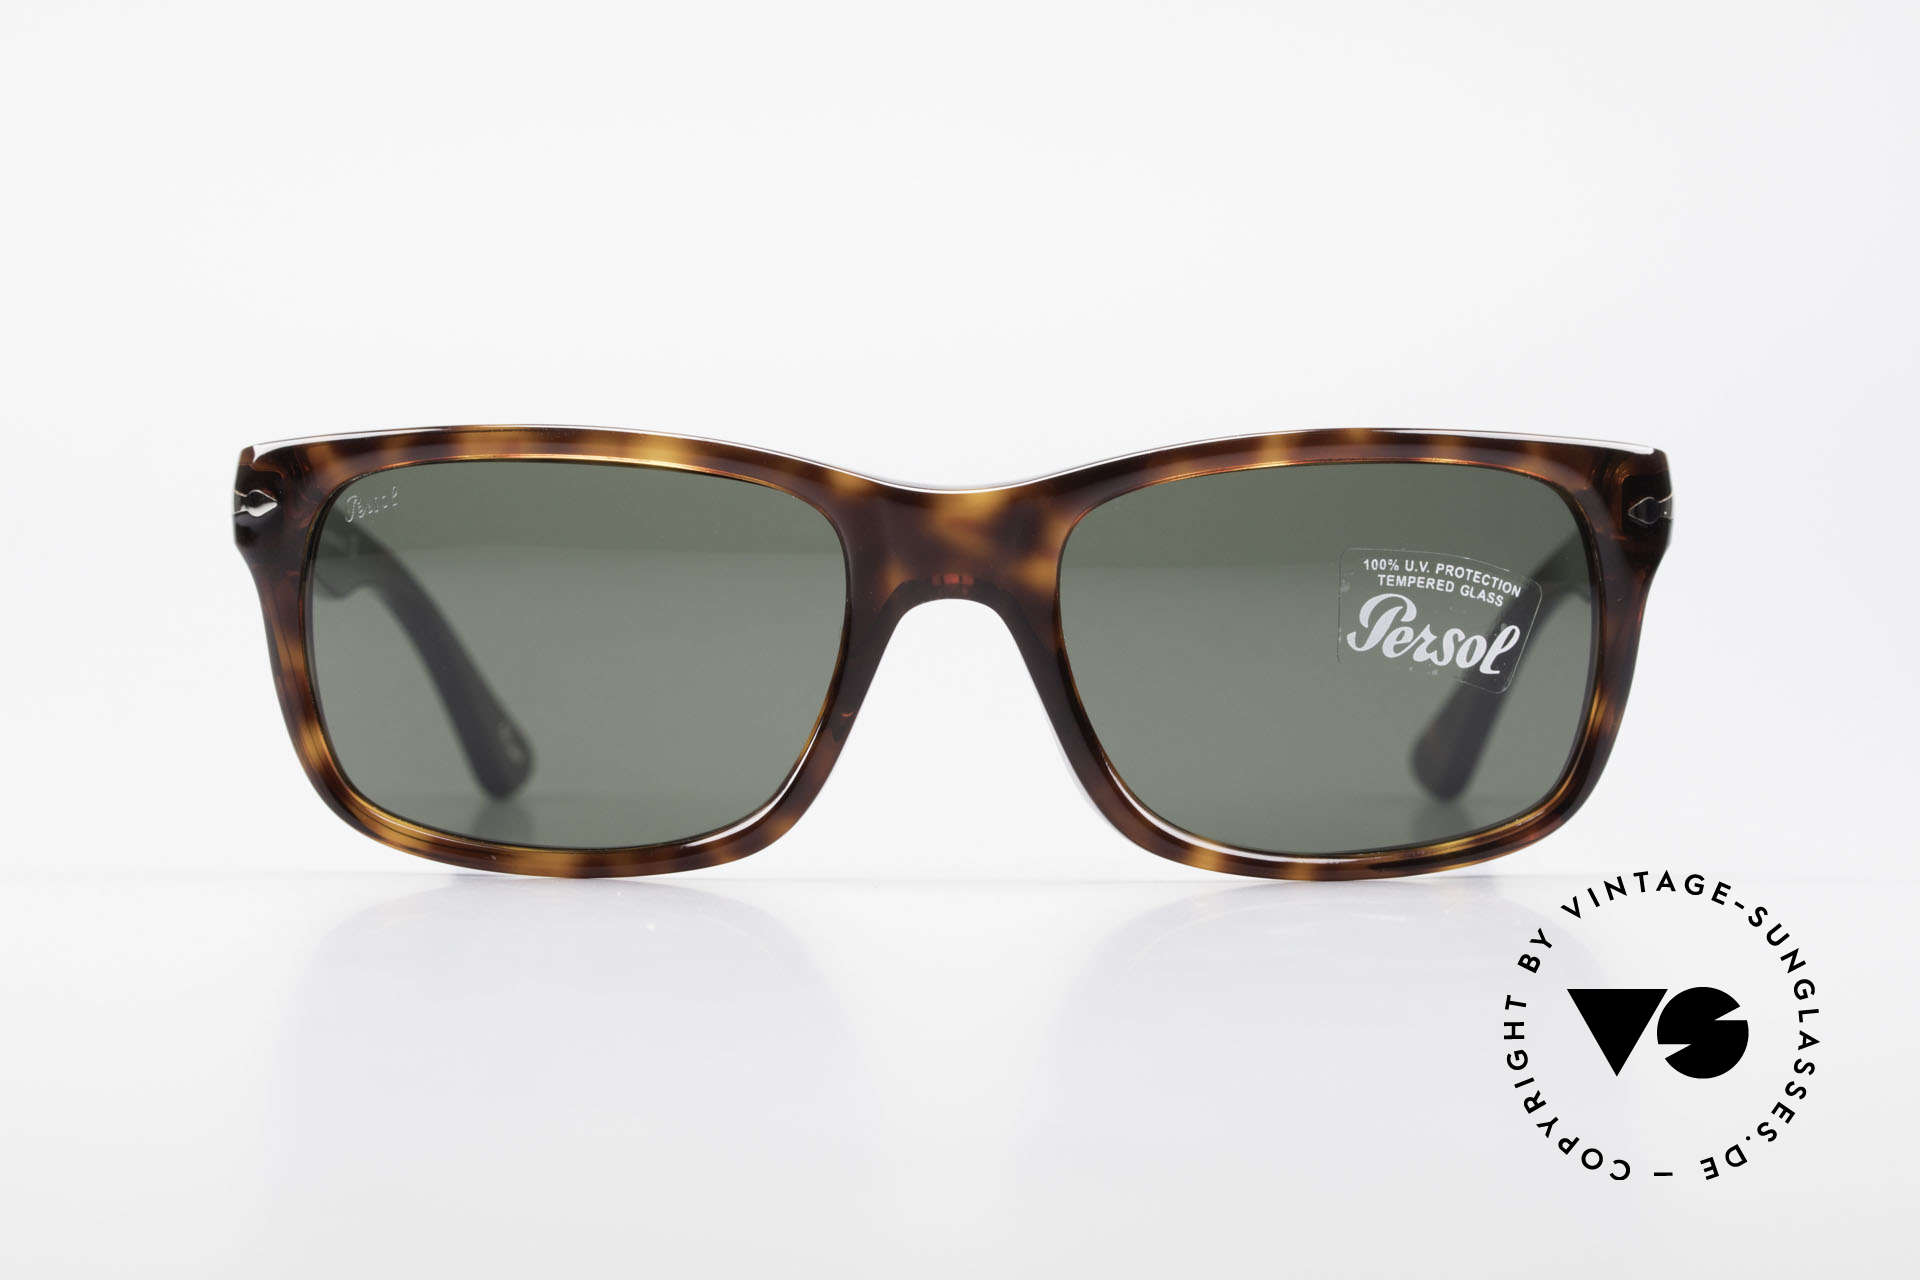 Persol 3048 Timeless Designer Sunglasses, the current collection based on the old Persol RATTIS, Made for Men and Women